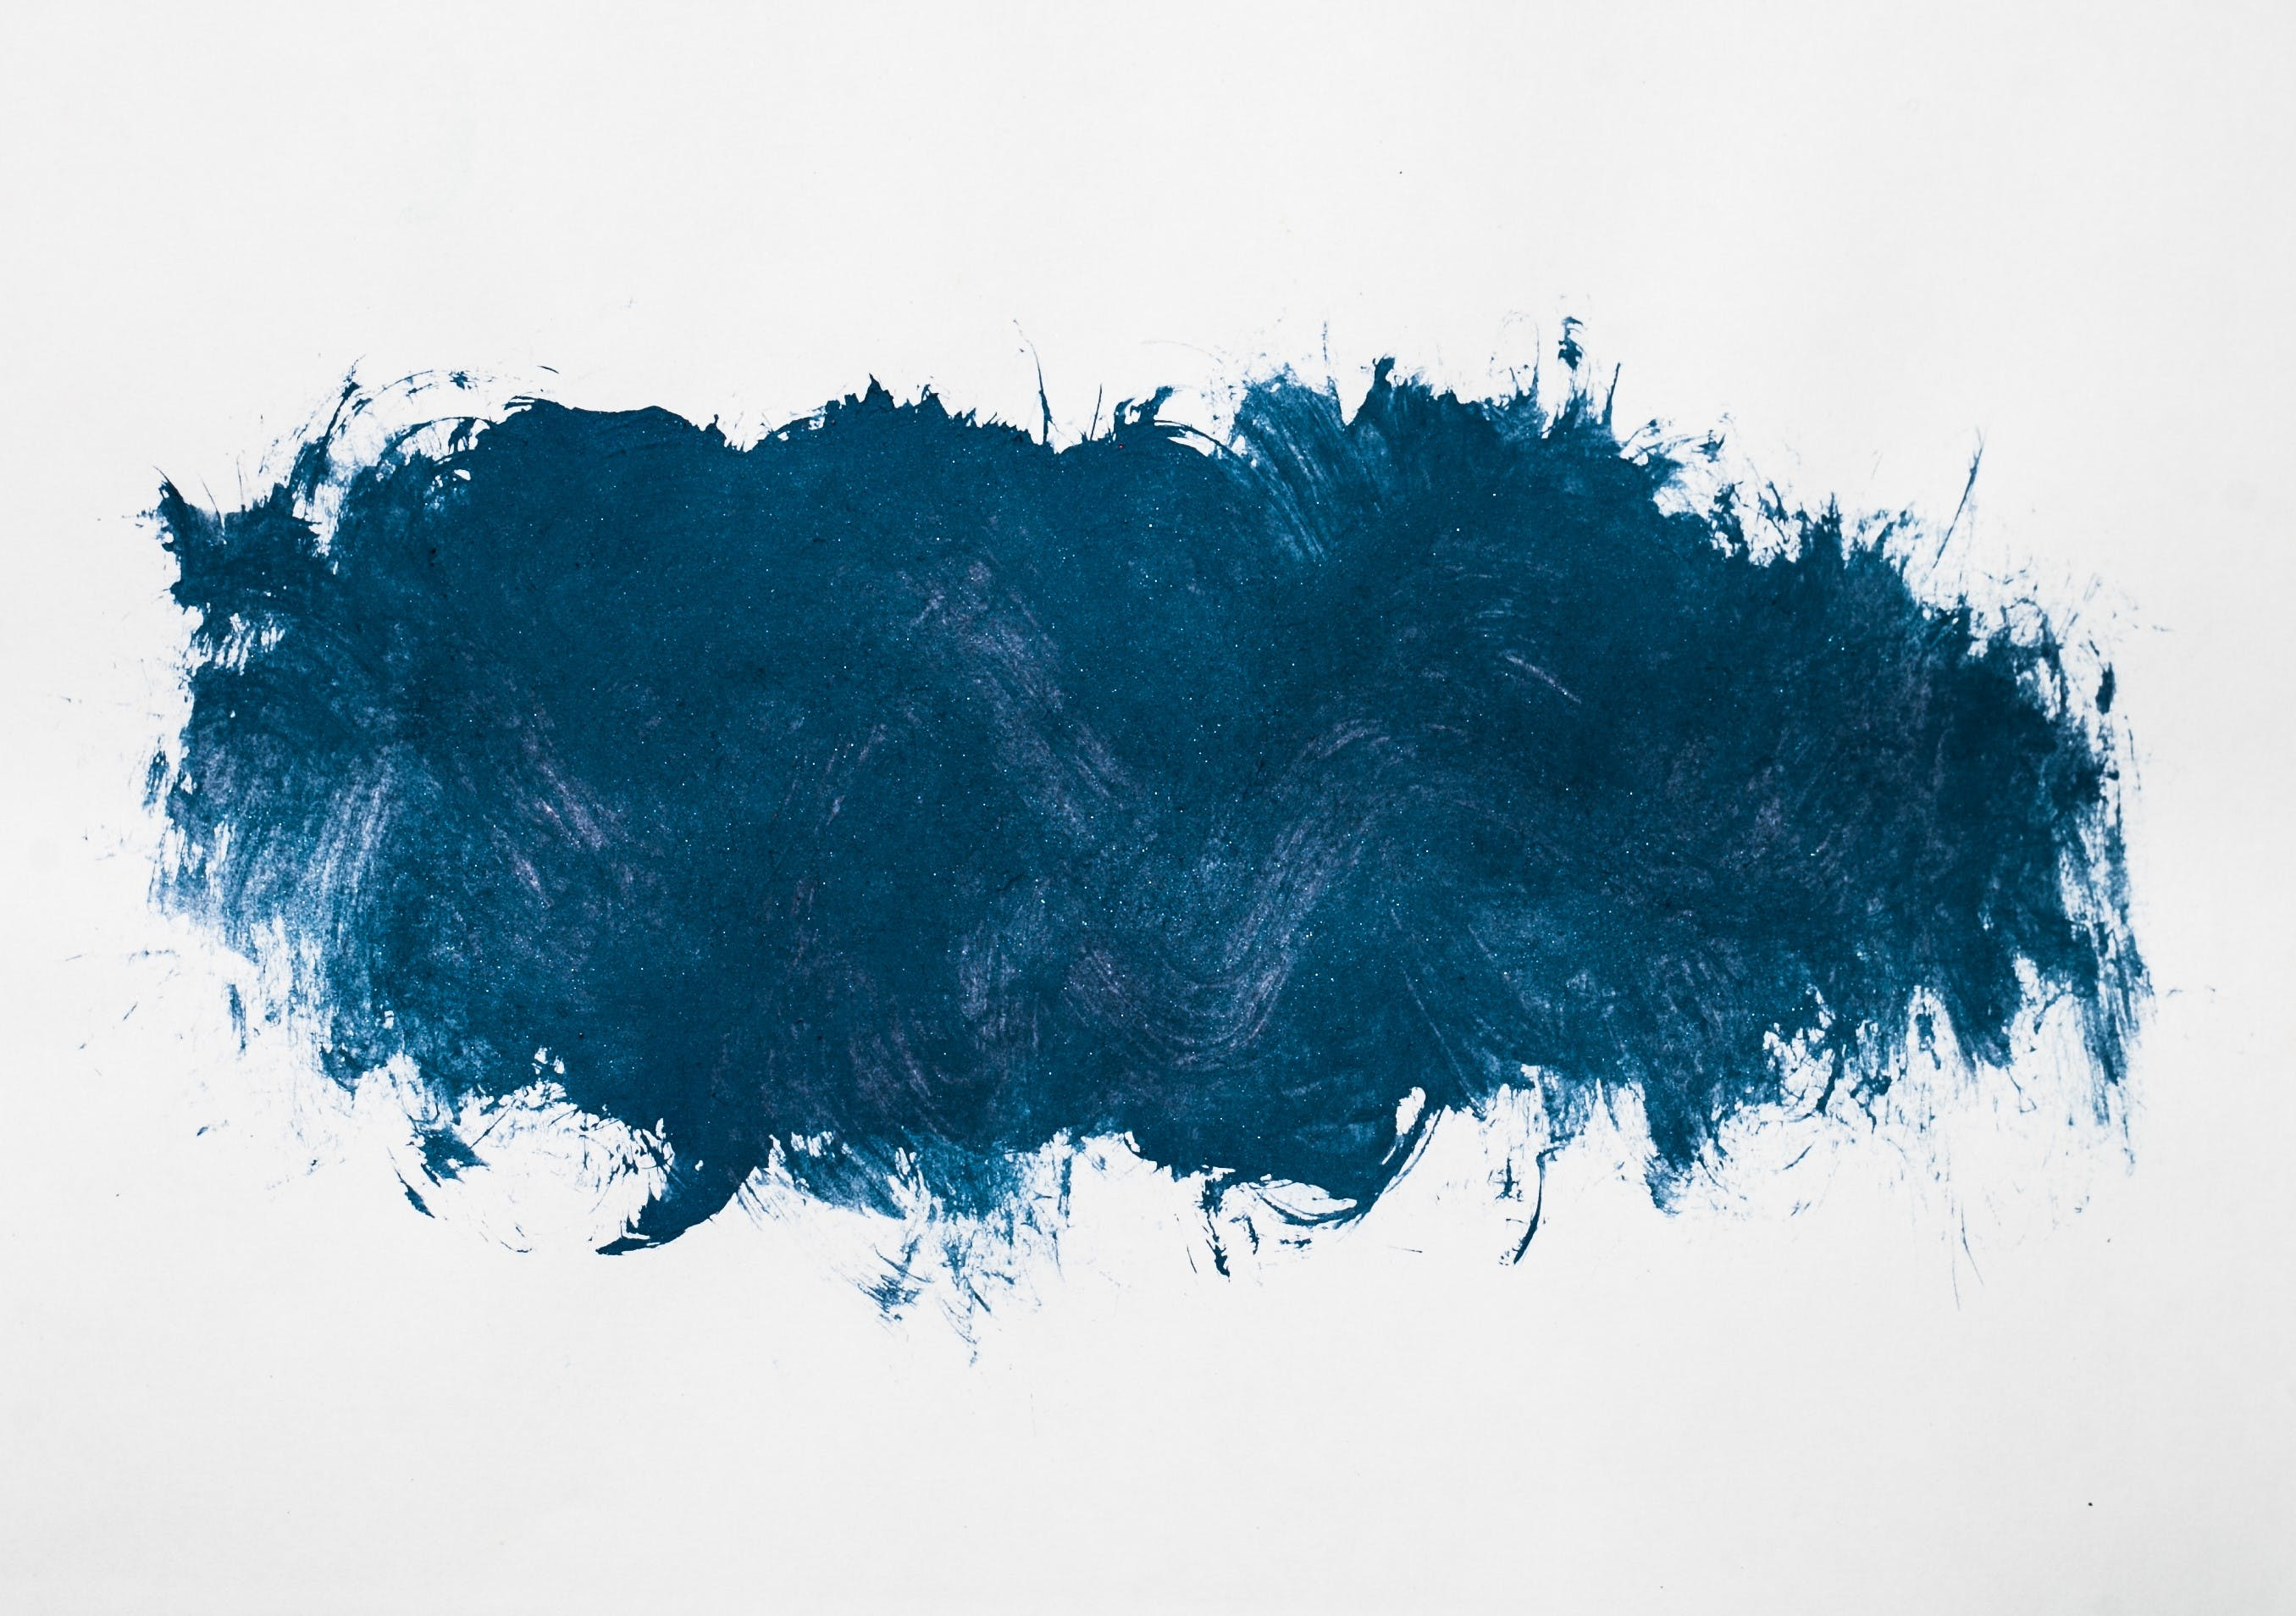 Free stock photo of abstract, abstract art, art, background